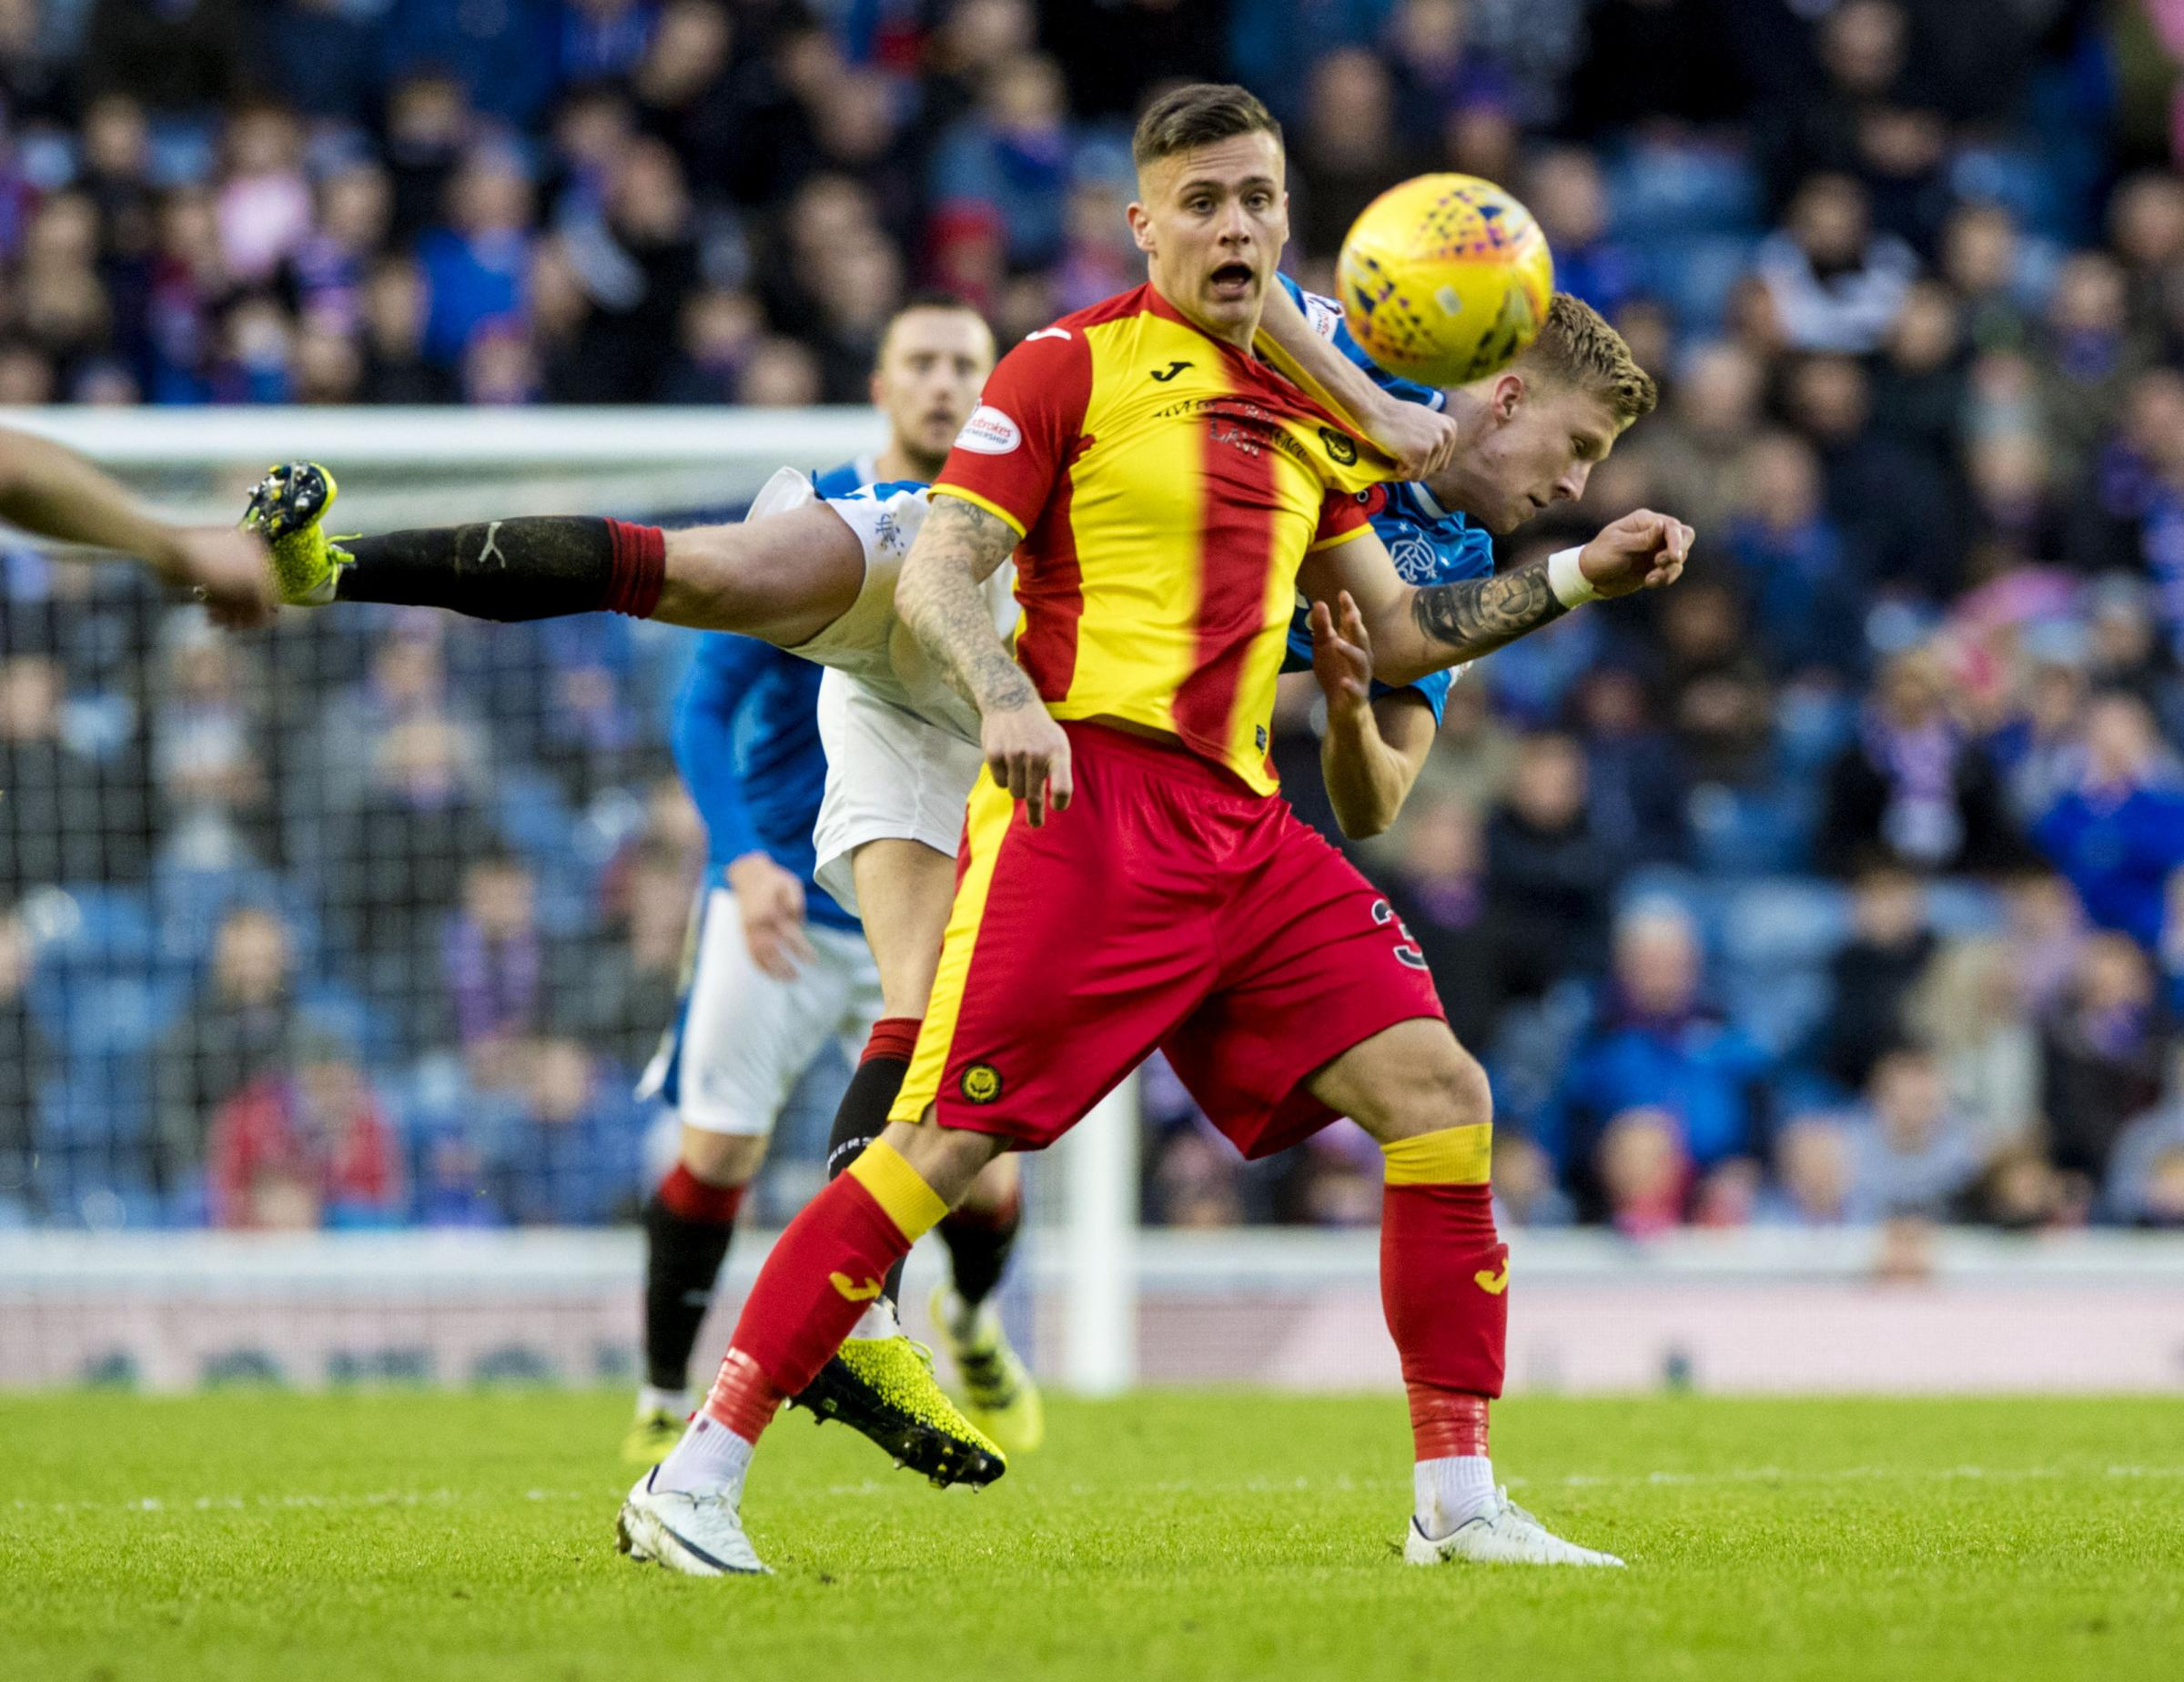 Miles Storey has been in good form over the last few games for Partick Thistle